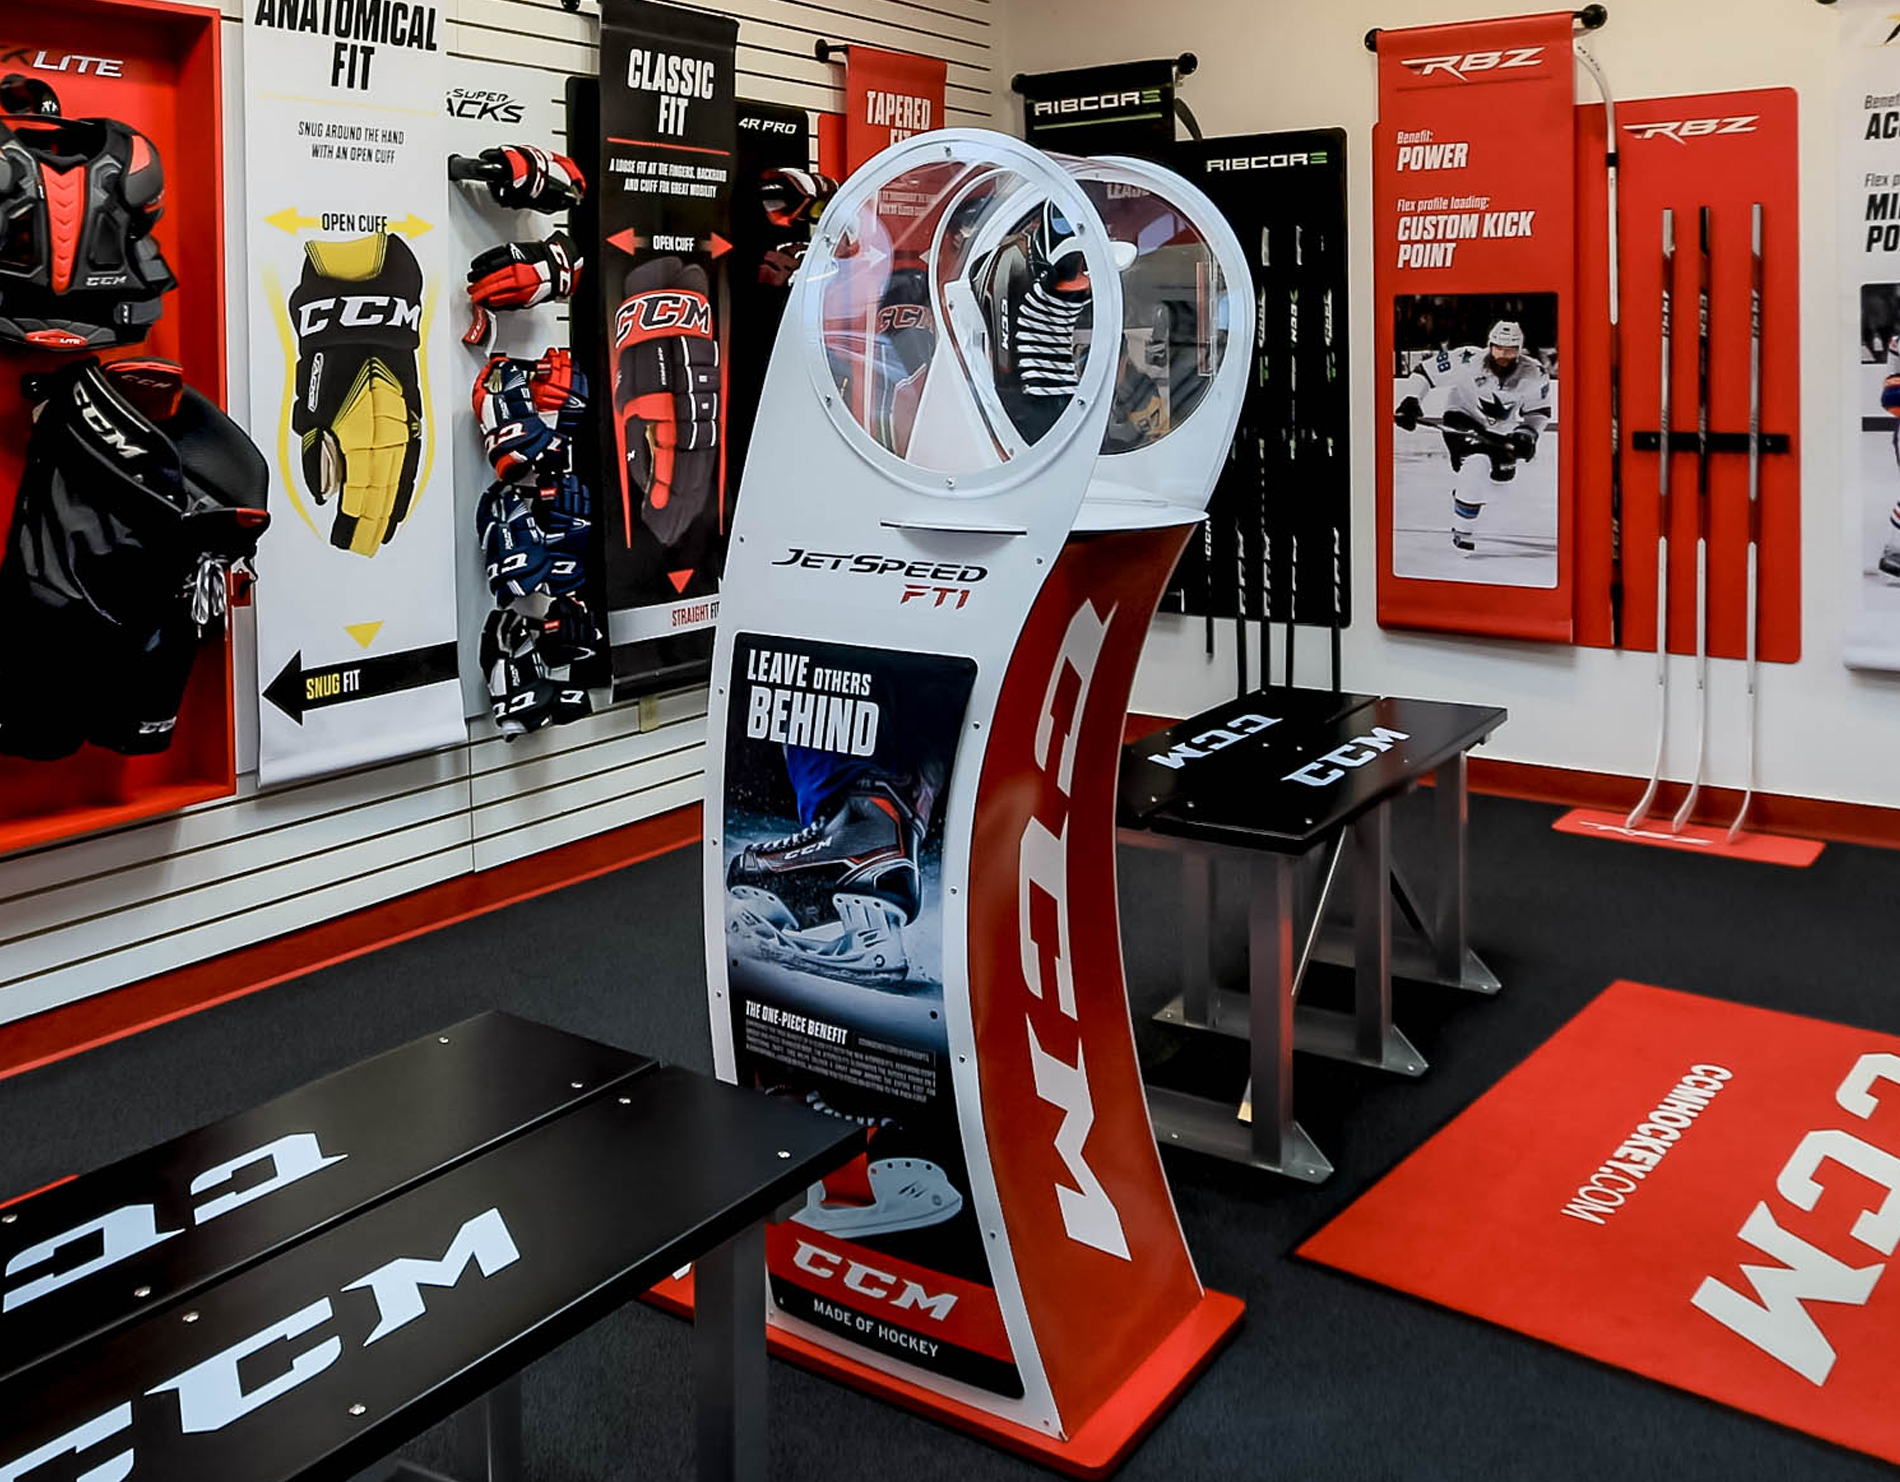 Sports Equipment Retailer Increases Foot Traffic and Sales by Implementing Multi-Channel Loyalty